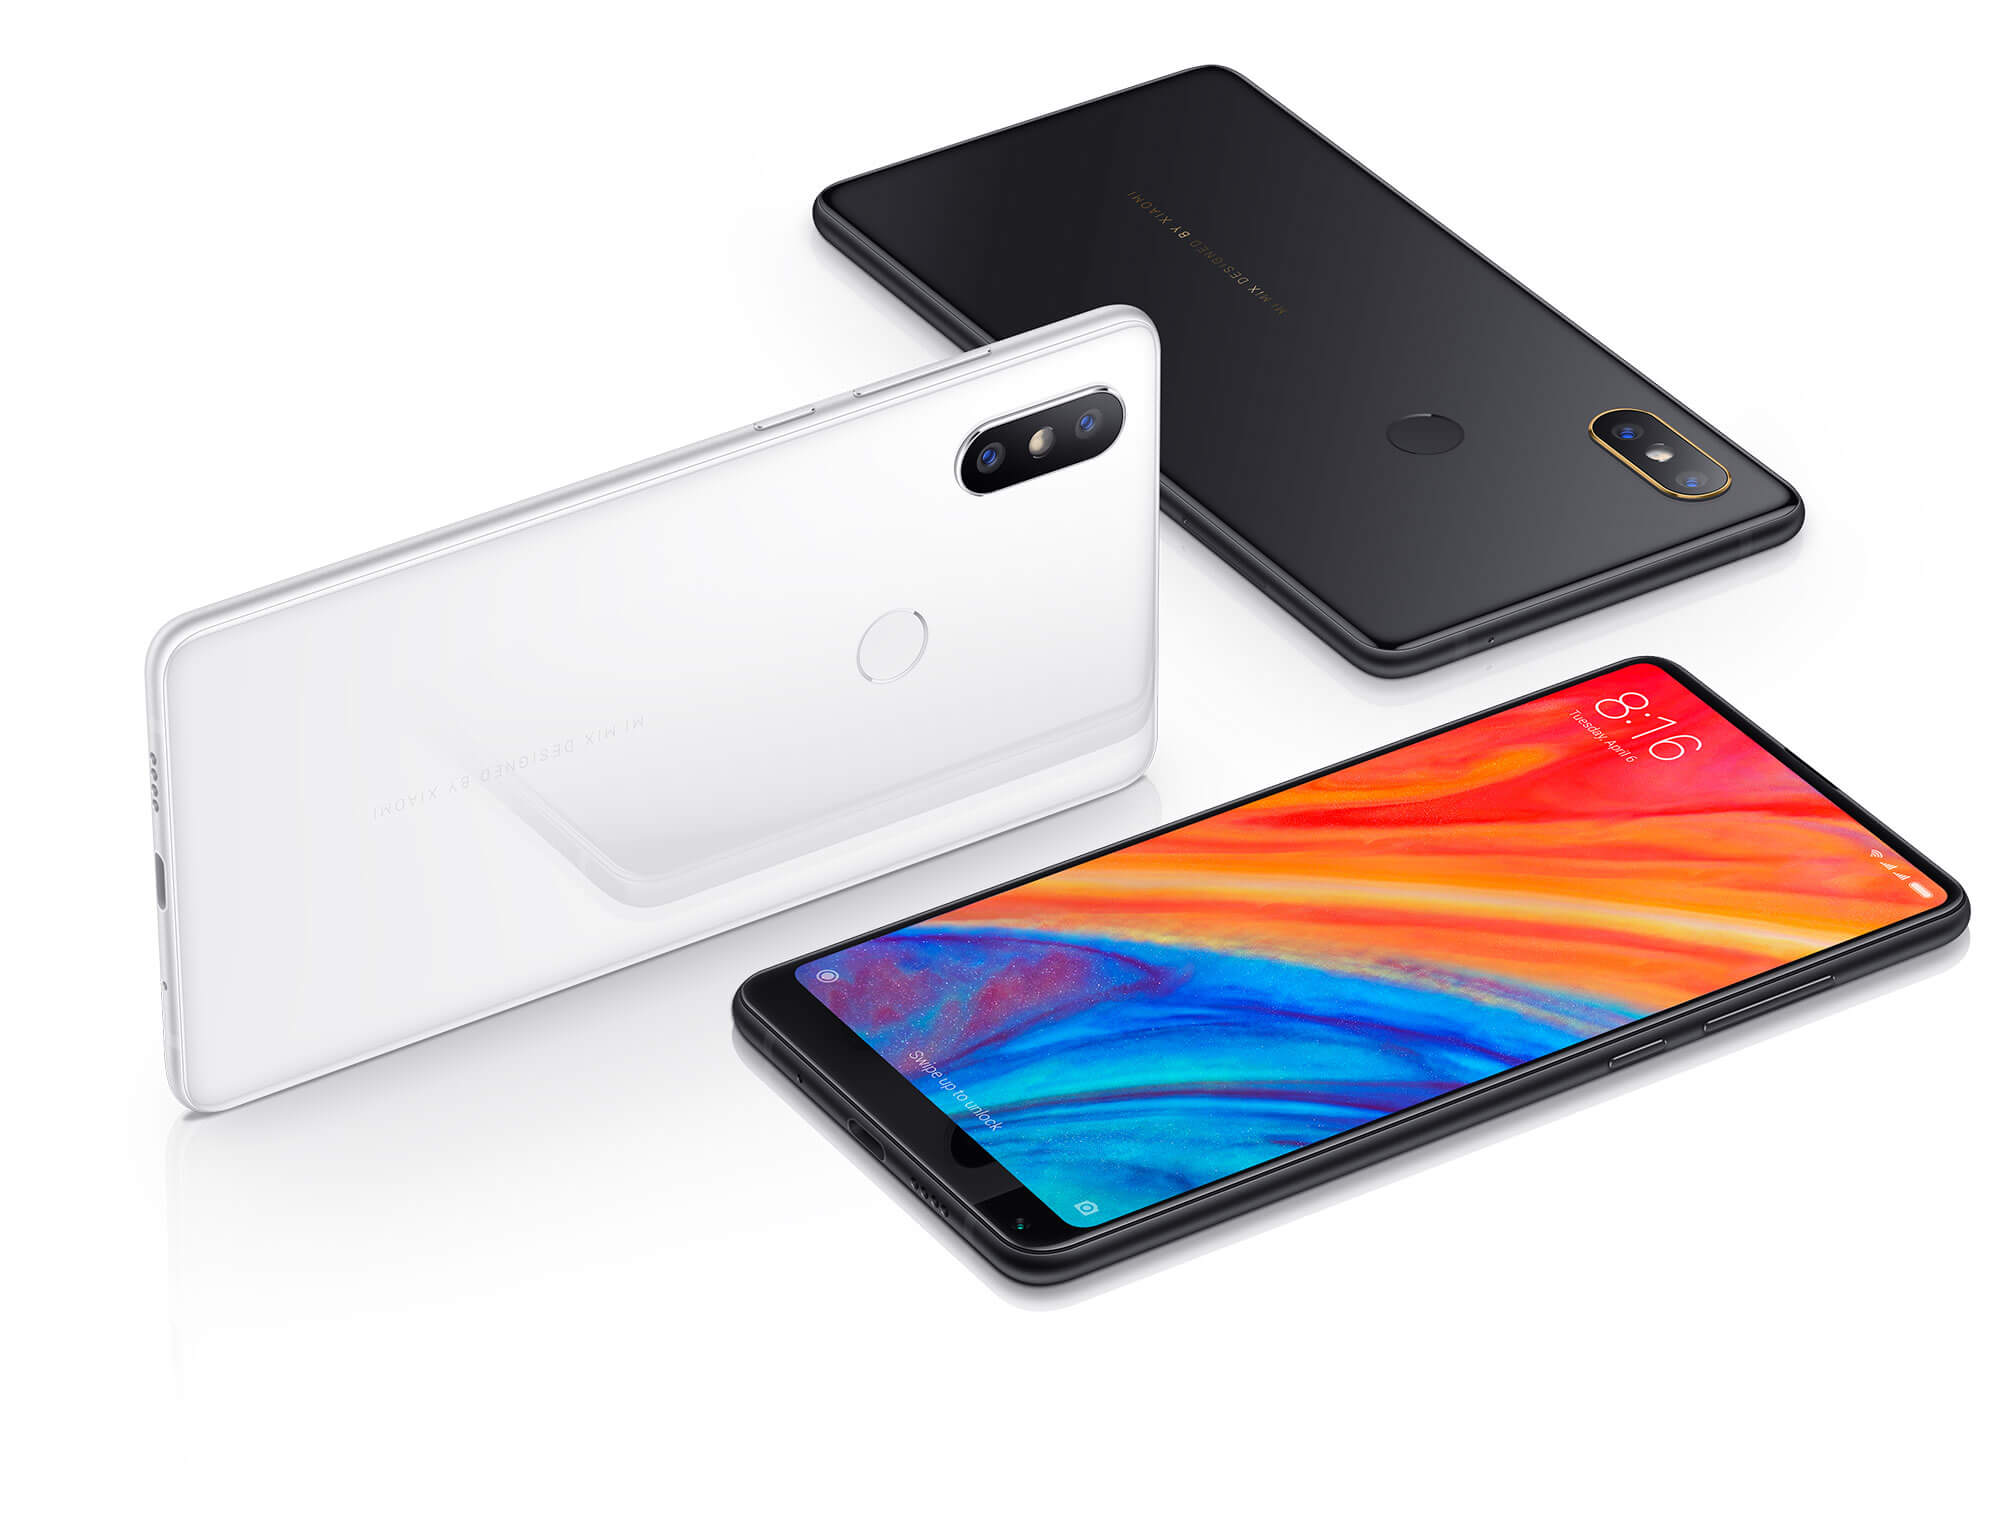 Mi Mix 2s By Starck (Xiaomi) - High-Tech